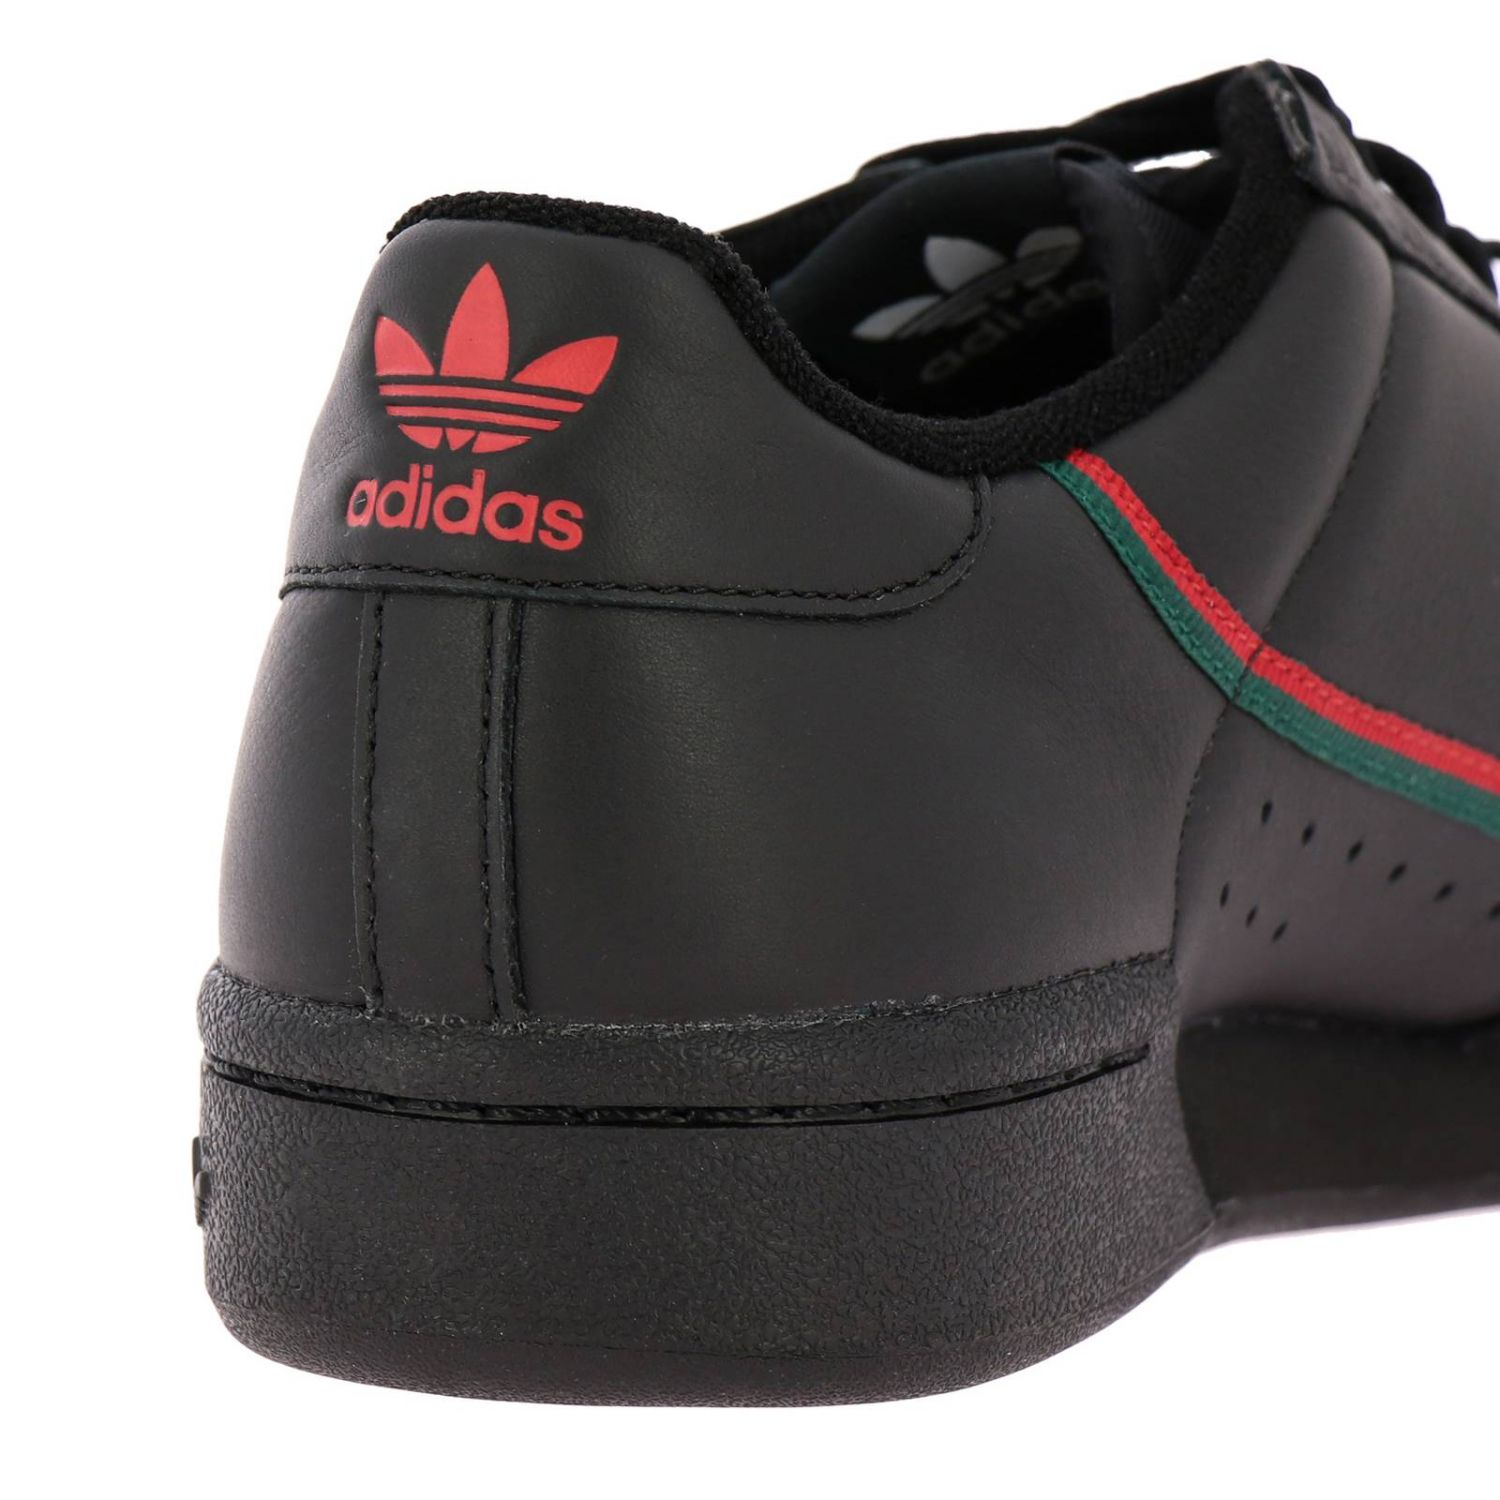 Sneakers Adidas Originals: Adidas Originals 80 Sneakers in leather with stripes black 4